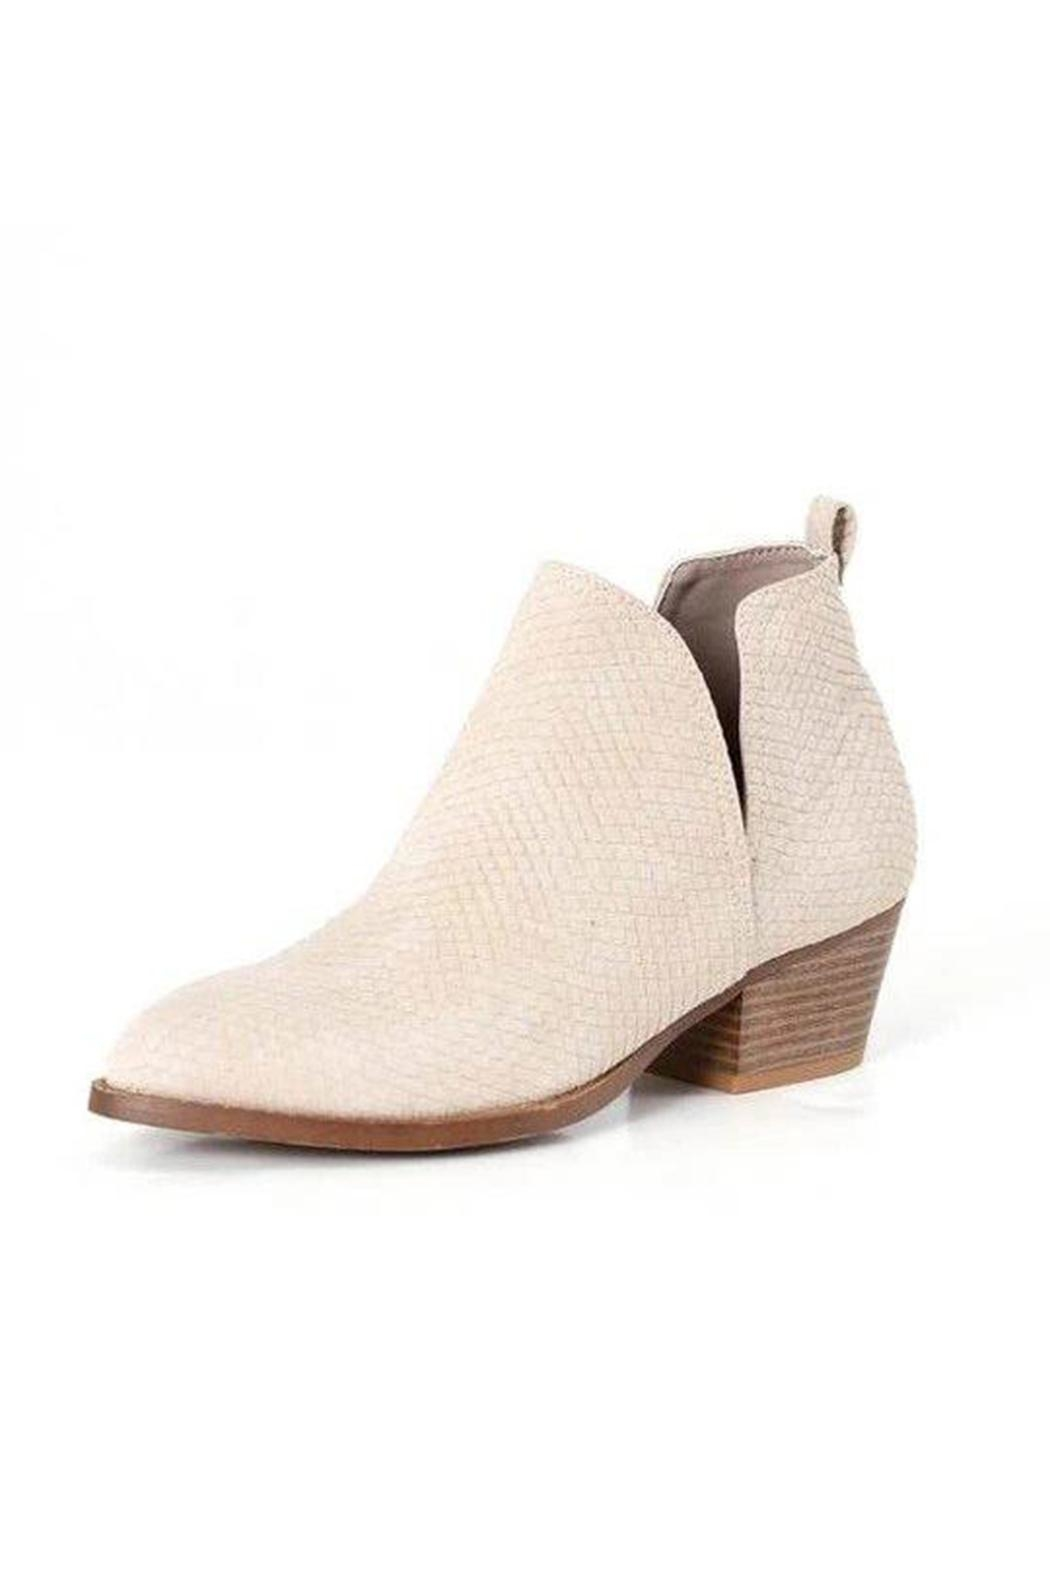 CL by Chinese Laundry Caring Chelsea Boot - Main Image